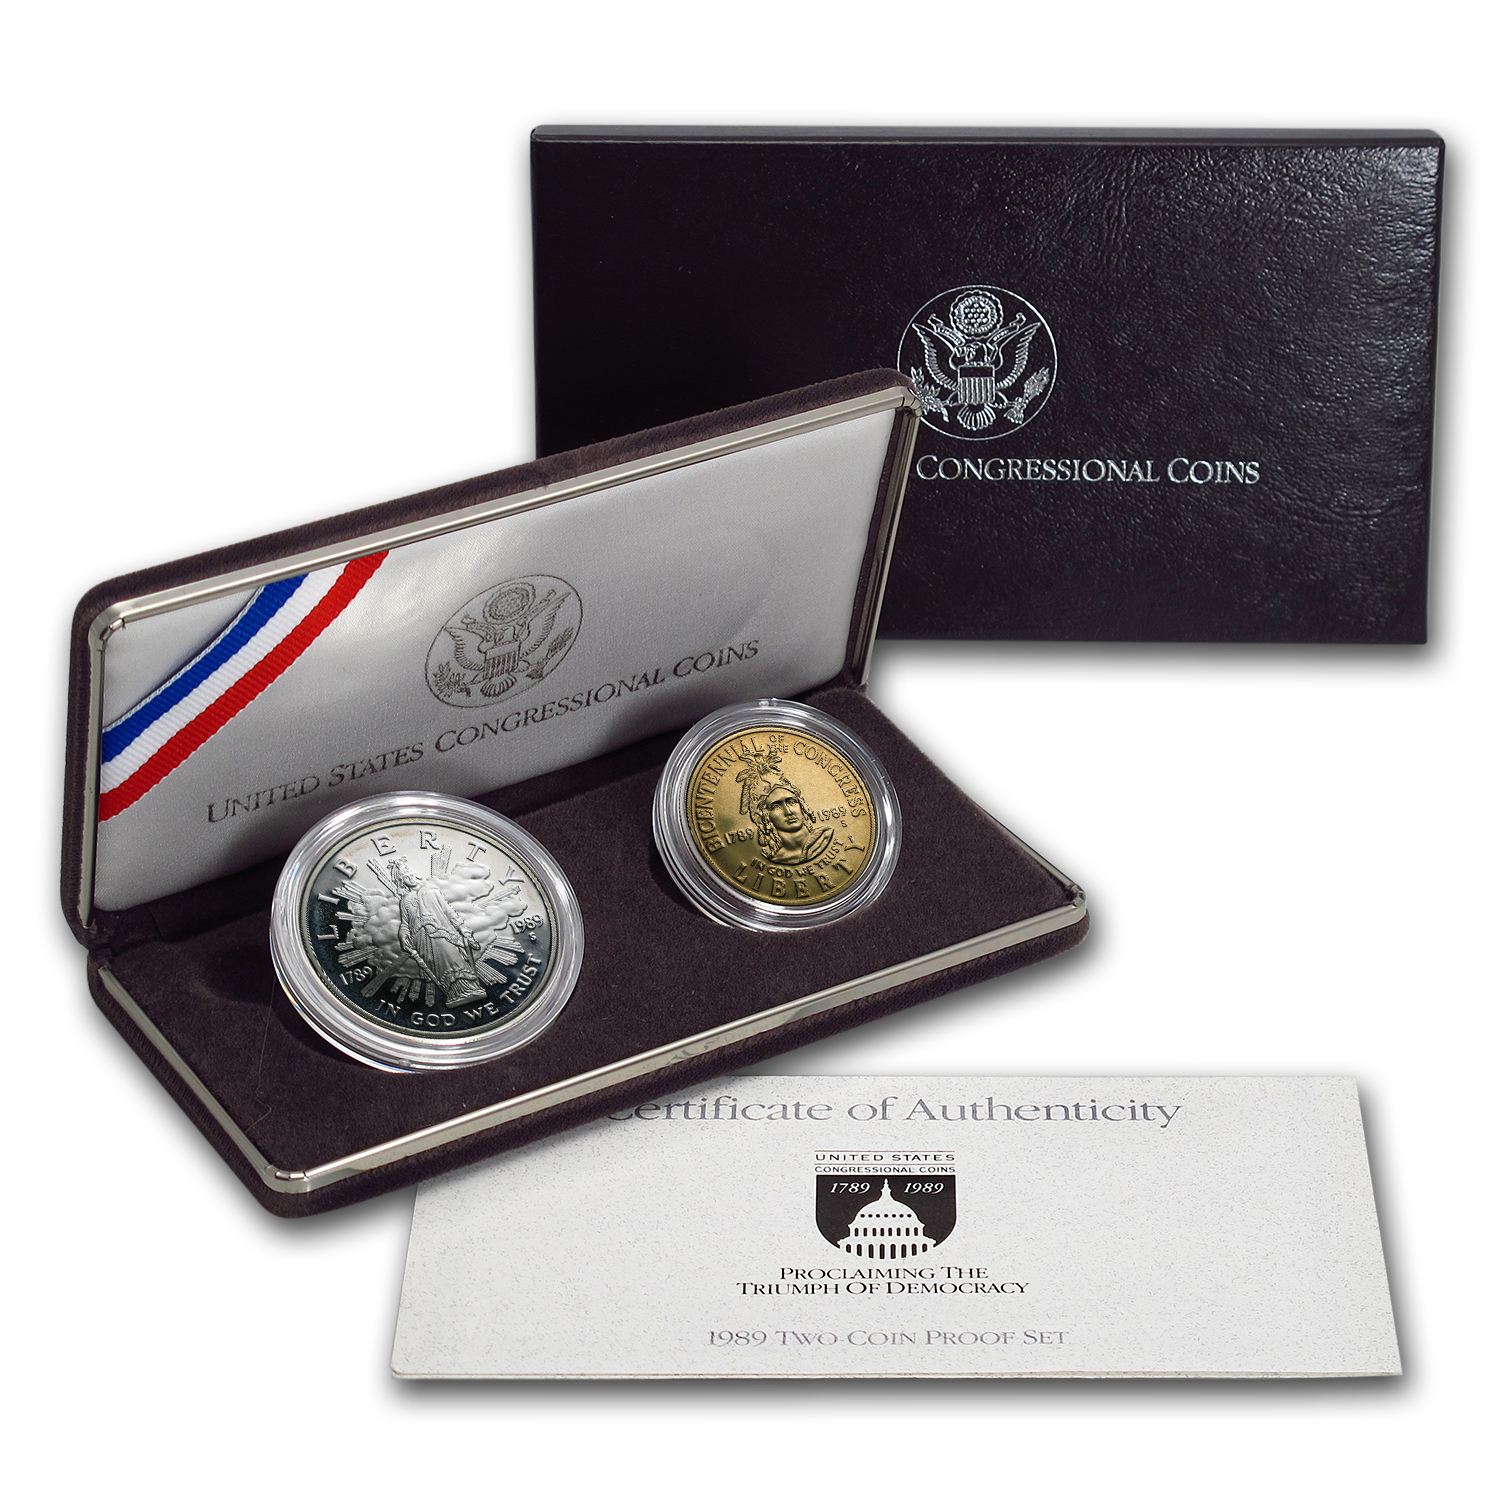 1989 2-Coin Congressional Proof Set (w/Box & COA)